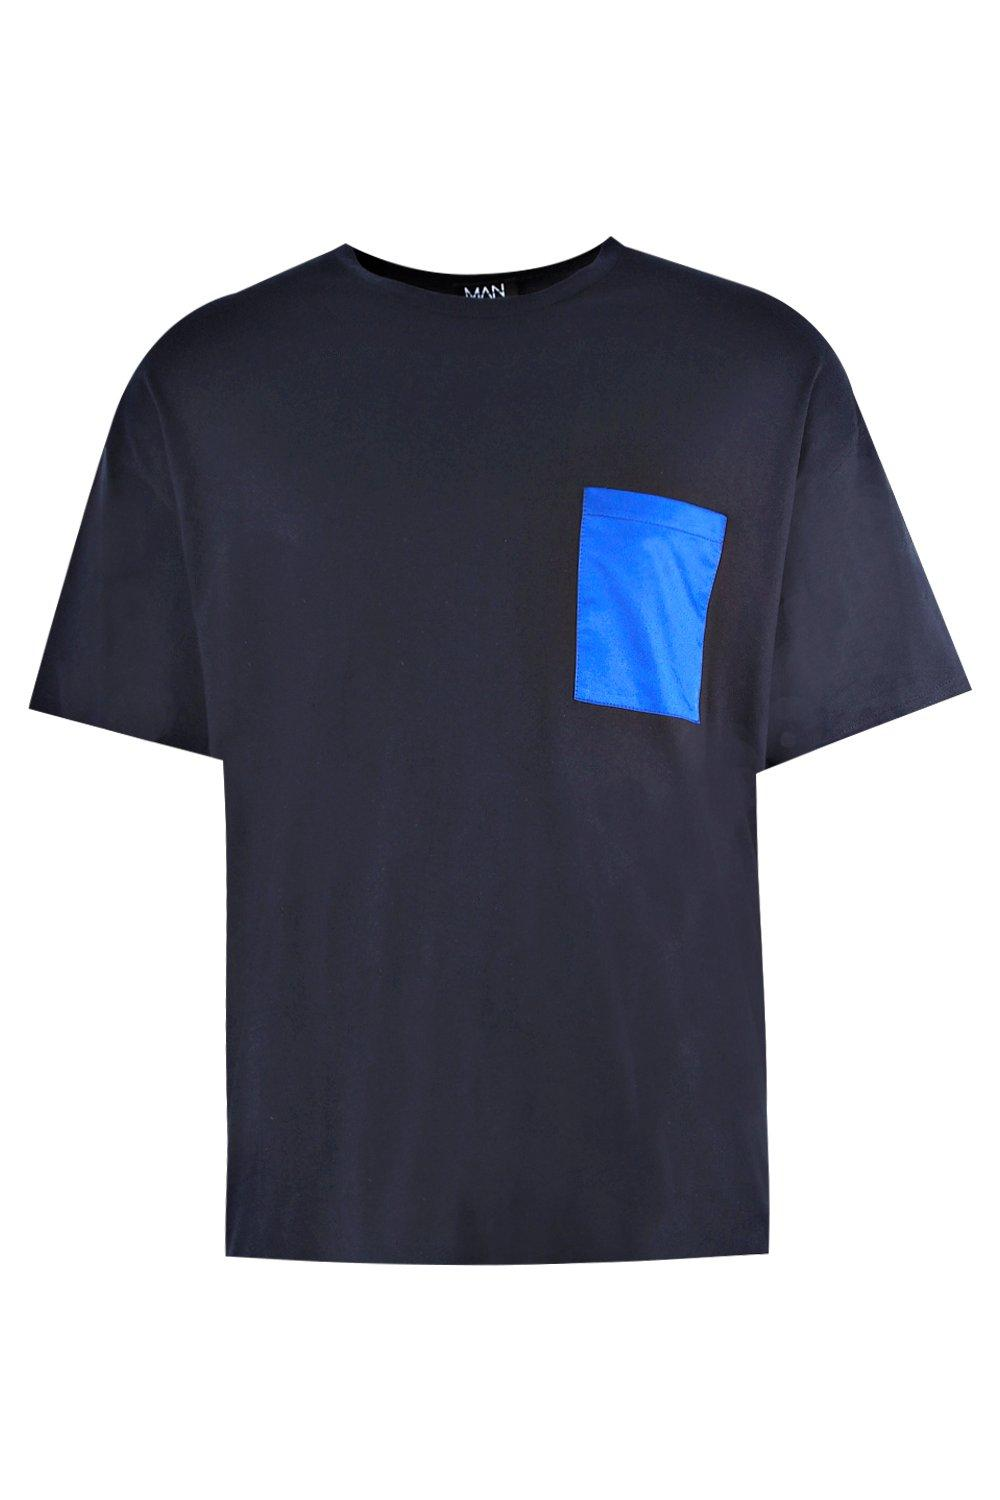 boohooMAN navy Oversized T-Shirt With Woven Pocket